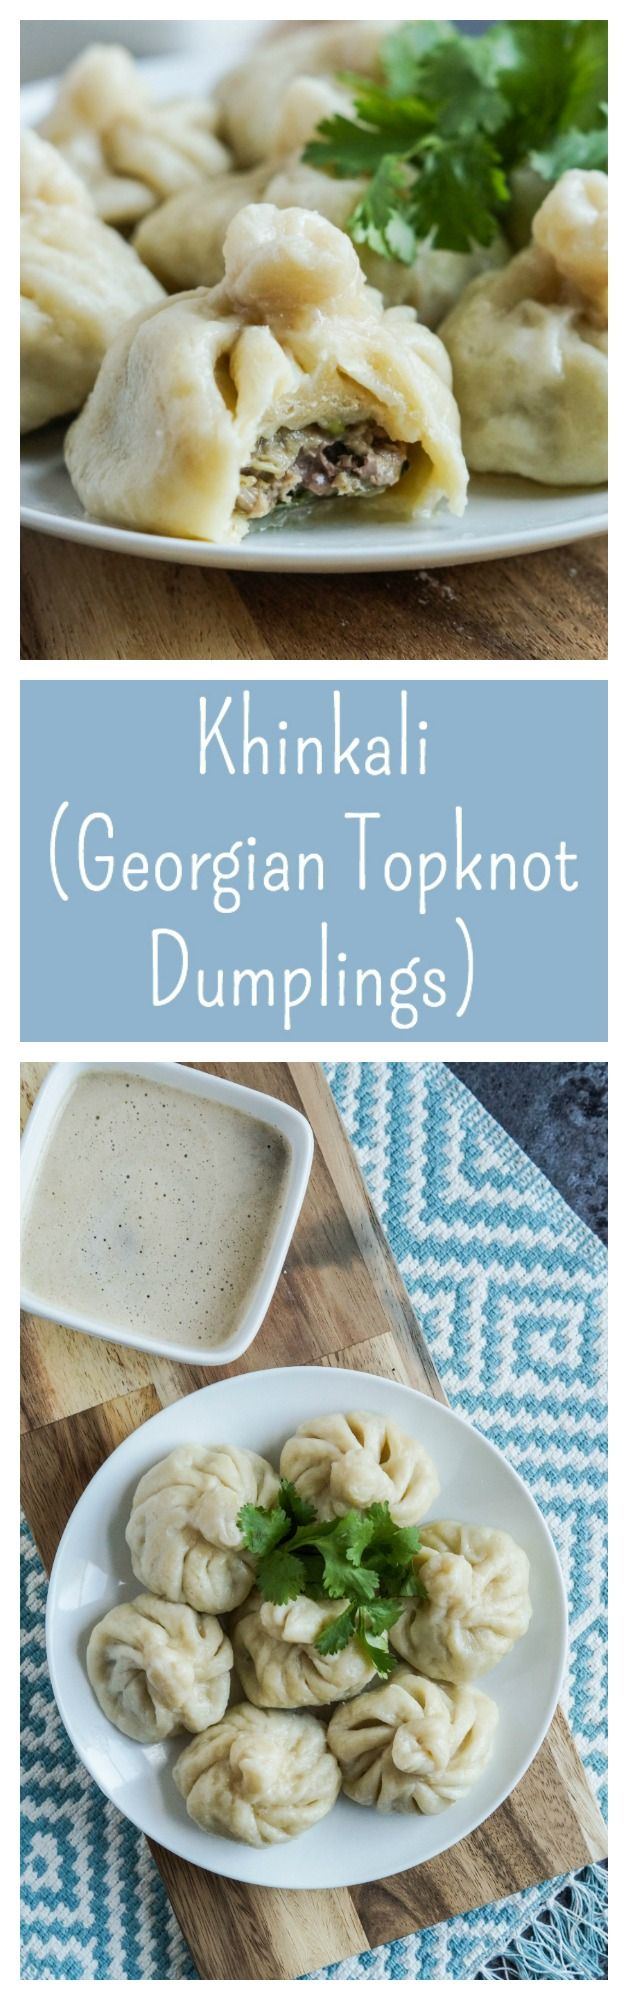 Khinkali (Georgian Topknot Dumplings)